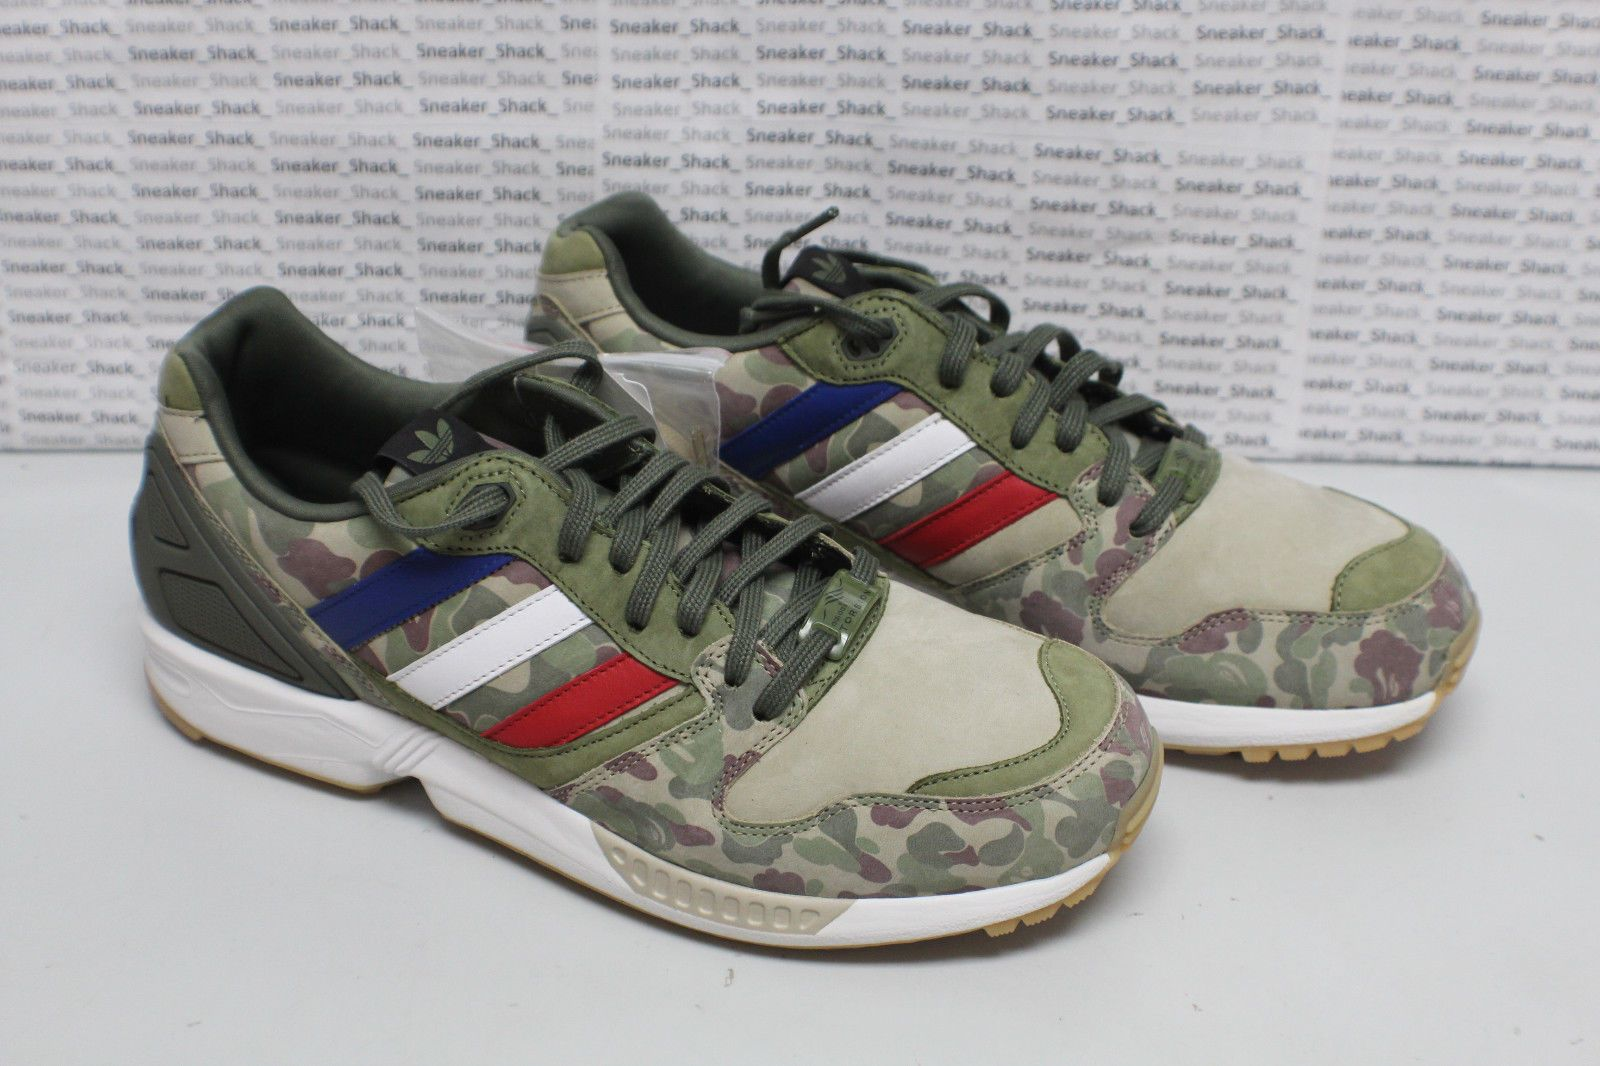 74fe544dabd28 NEW DS Adidas Undefeated BAPE A Bathing Ape ZX 5000 Camo Q34751 - Size 8.5